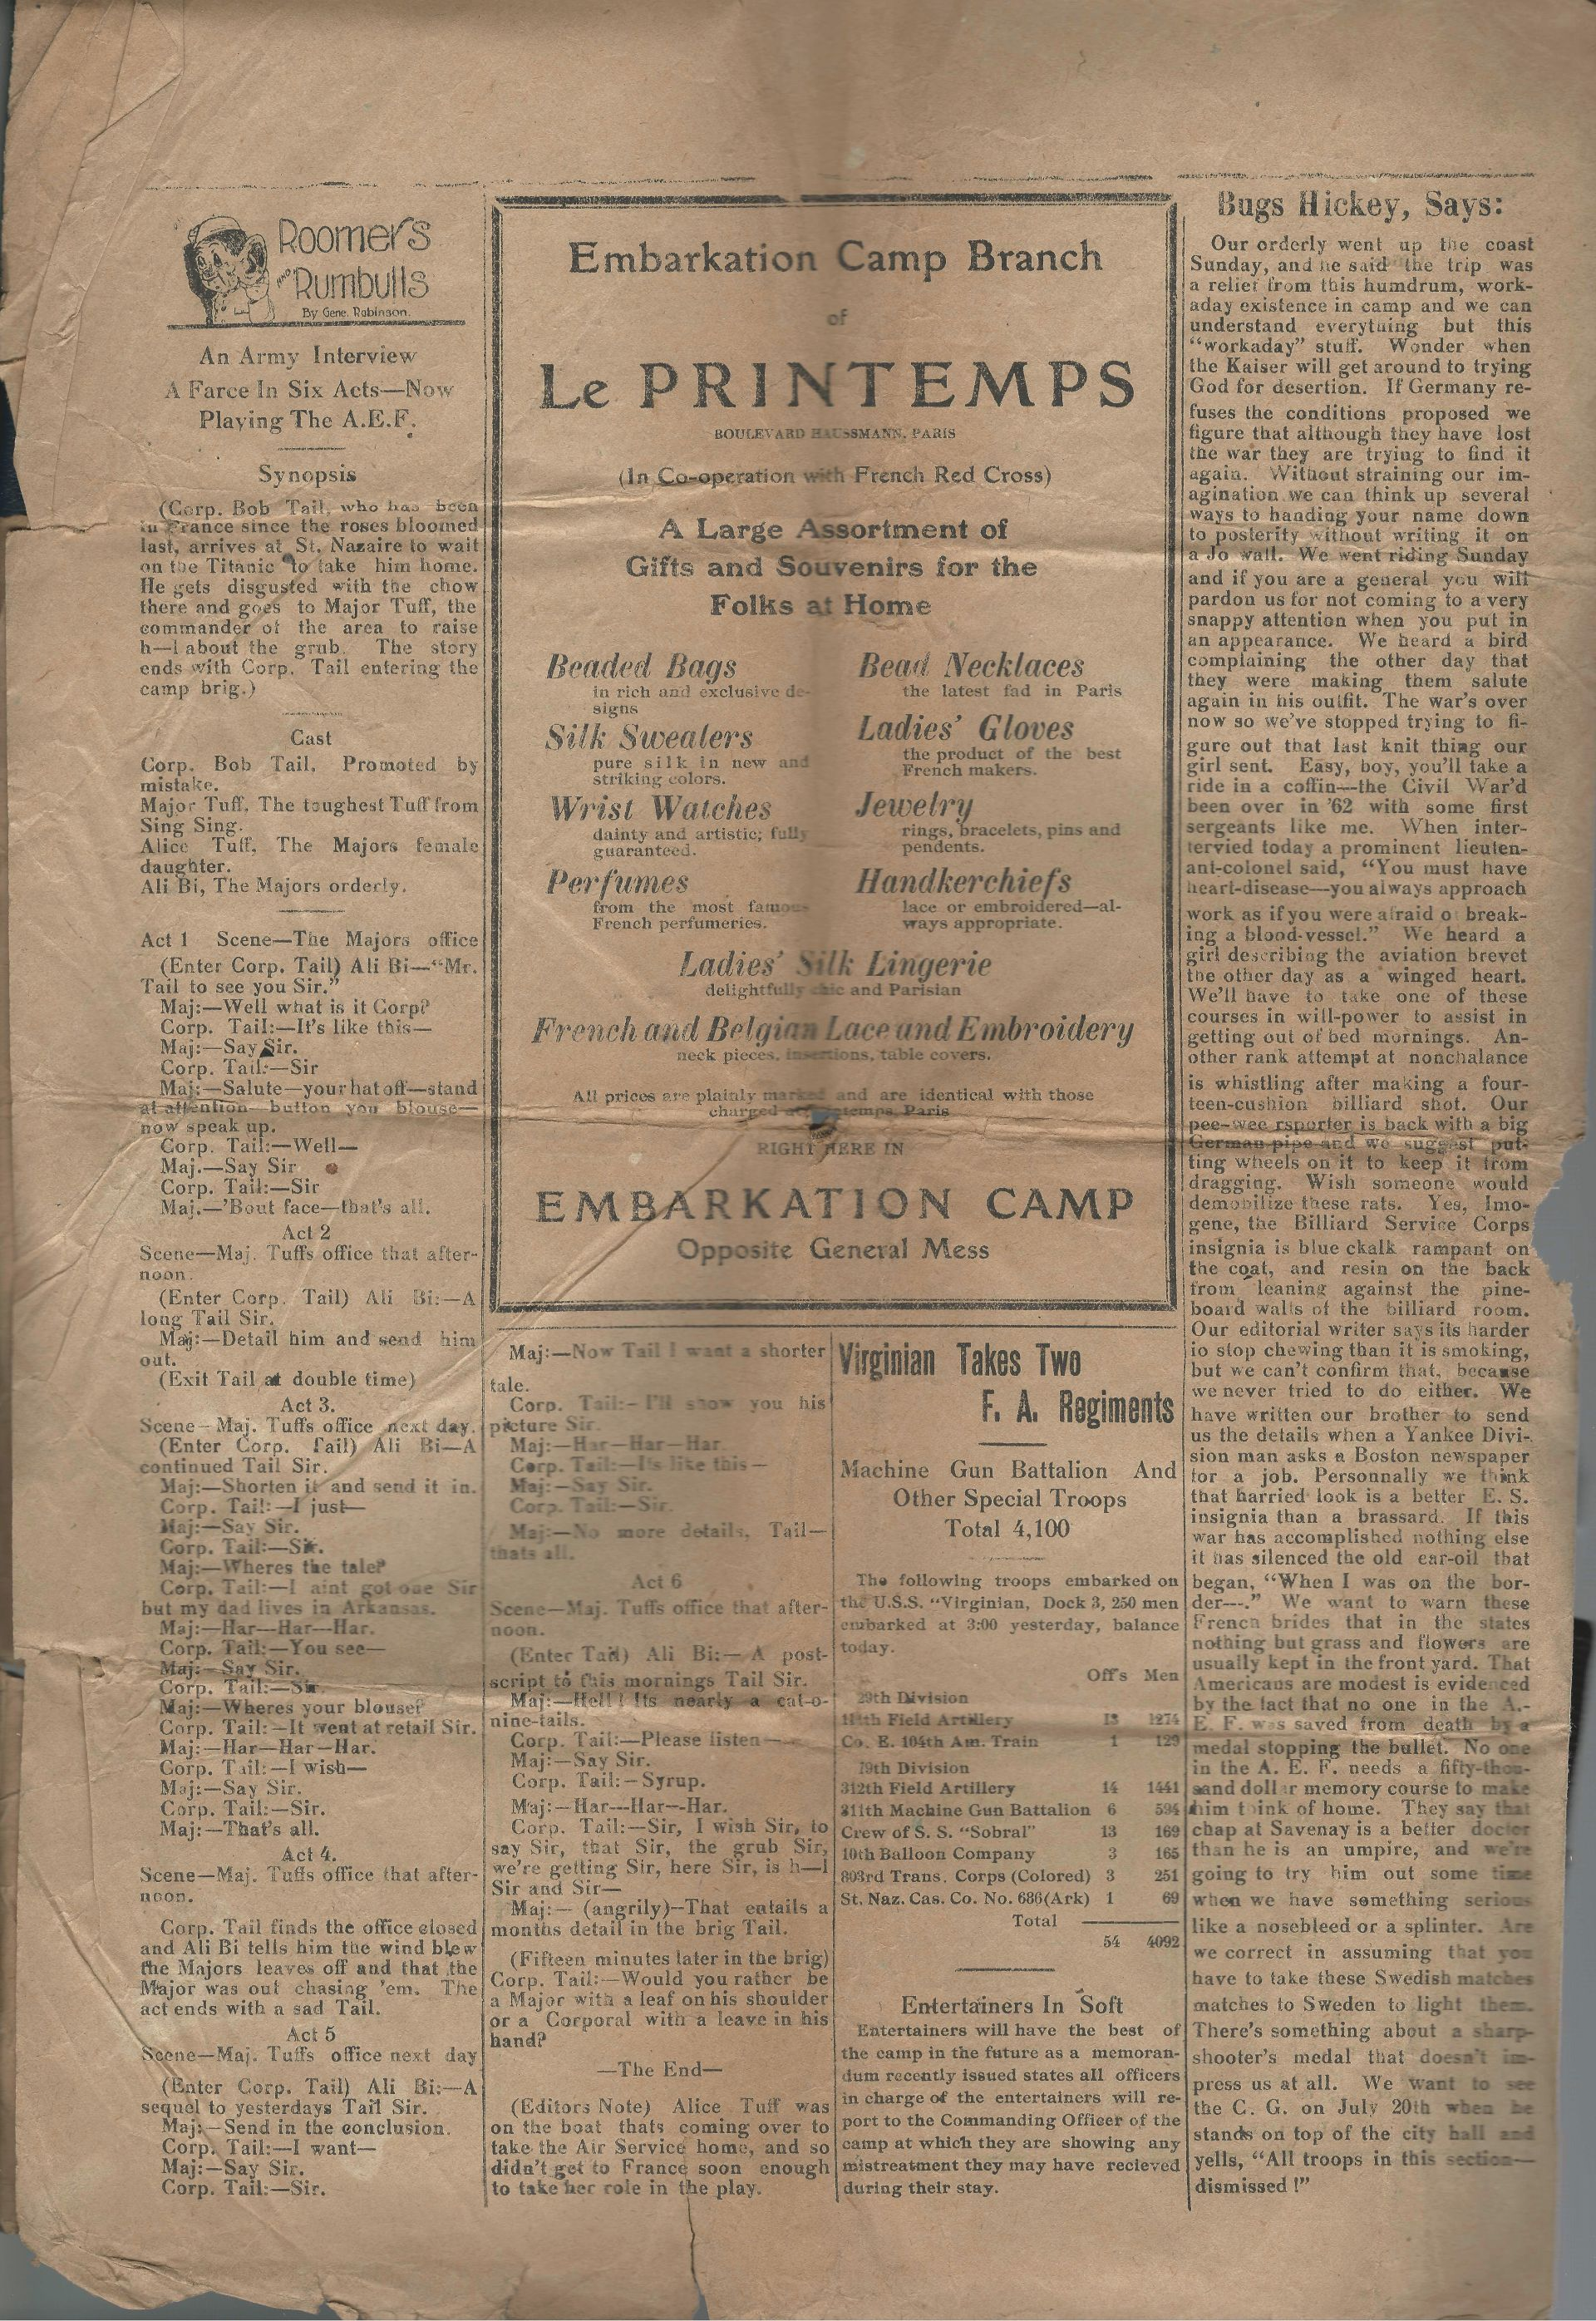 The Gangplank News - Newspaper - No. 31 - Embarkation Camp - St. Nazaire, France - May 13, 1919 - Page 4